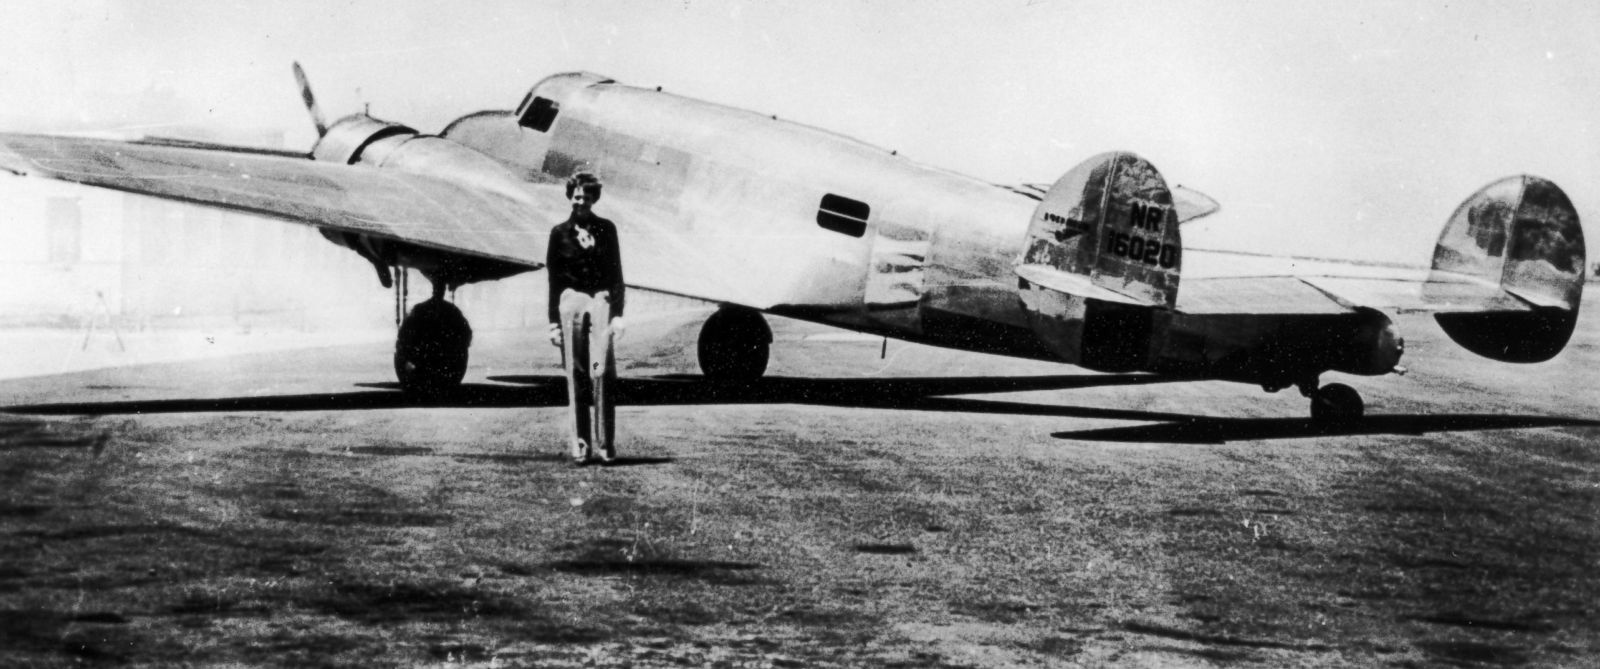 10 Airplanes That Shockingly Disappeared Without A Trace